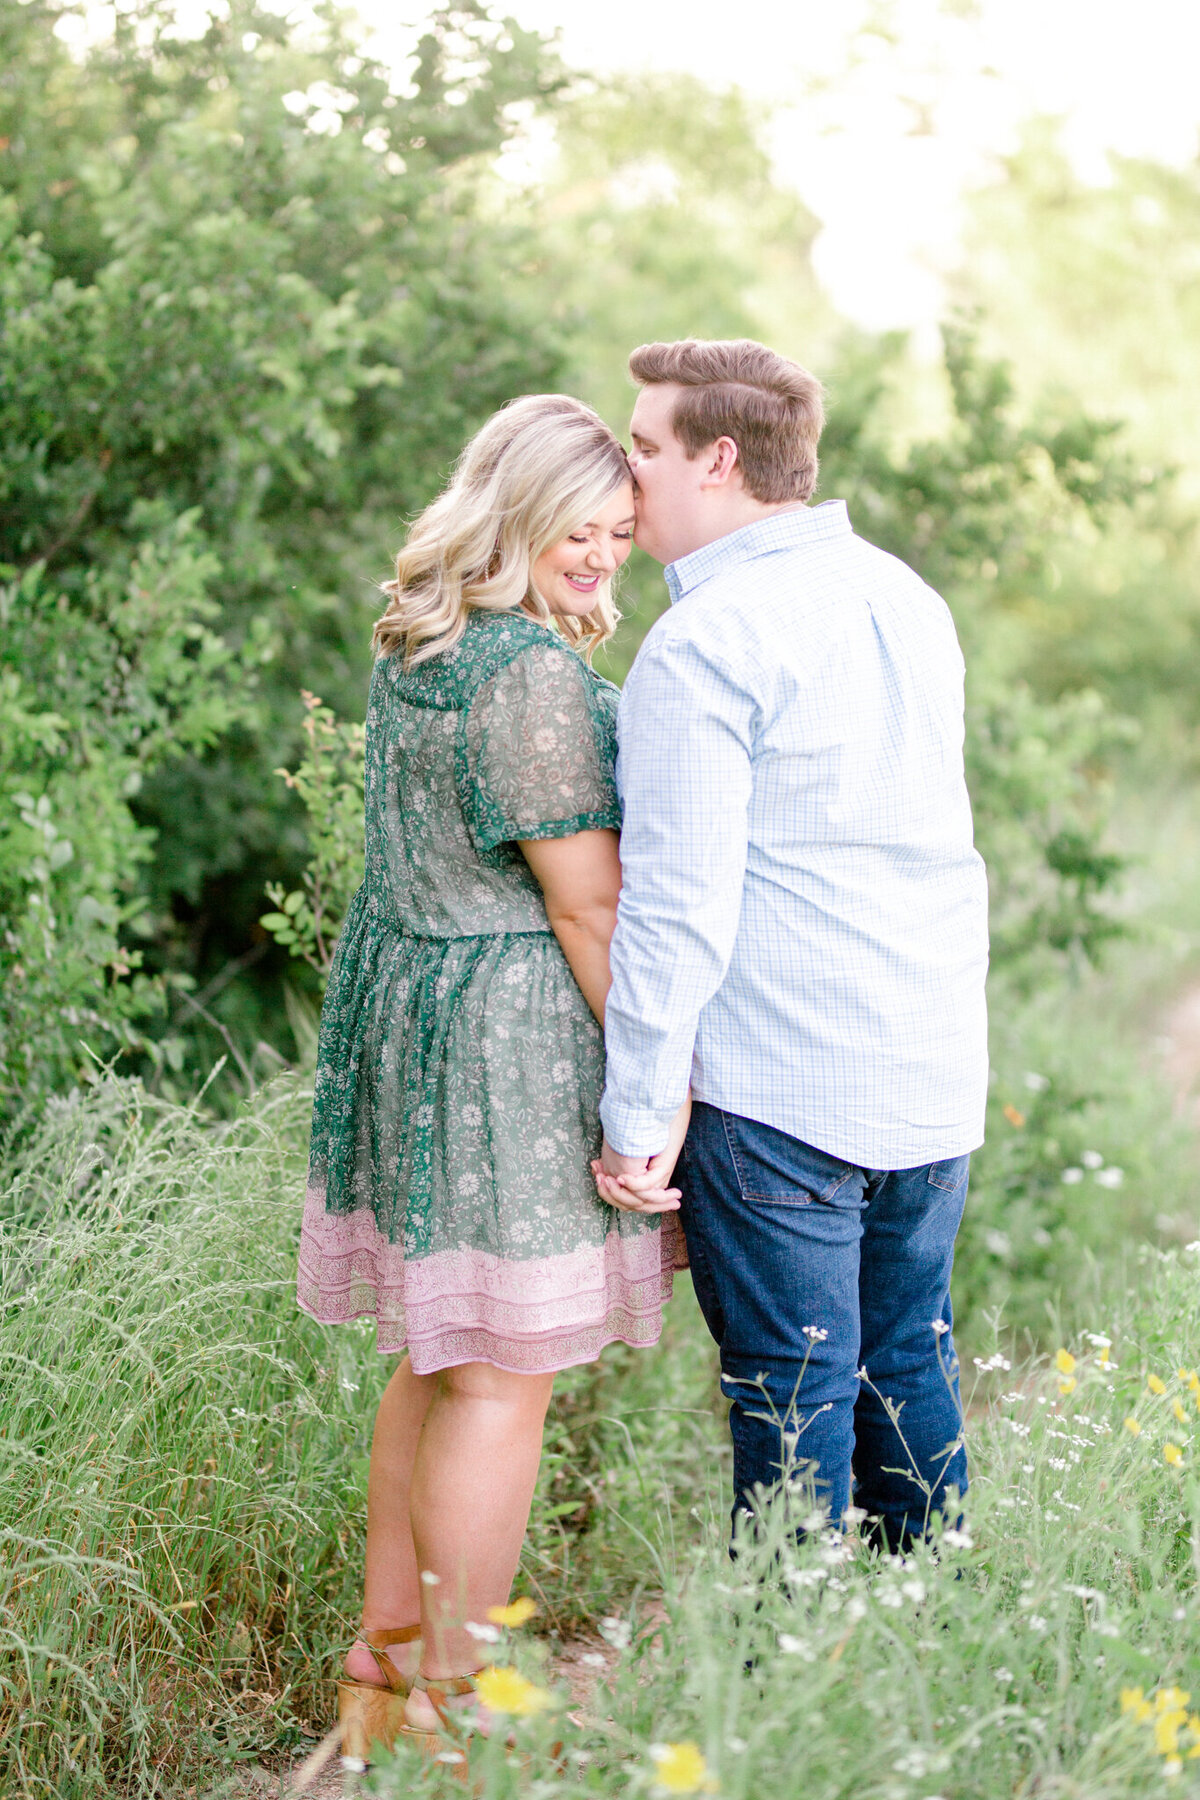 Maddie & Chris Engagement Session at Tandy Hills Natural Area | Sami Kathryn Photography | Dallas DFW Fort Worth Wedding and Portrait Photogapher-30